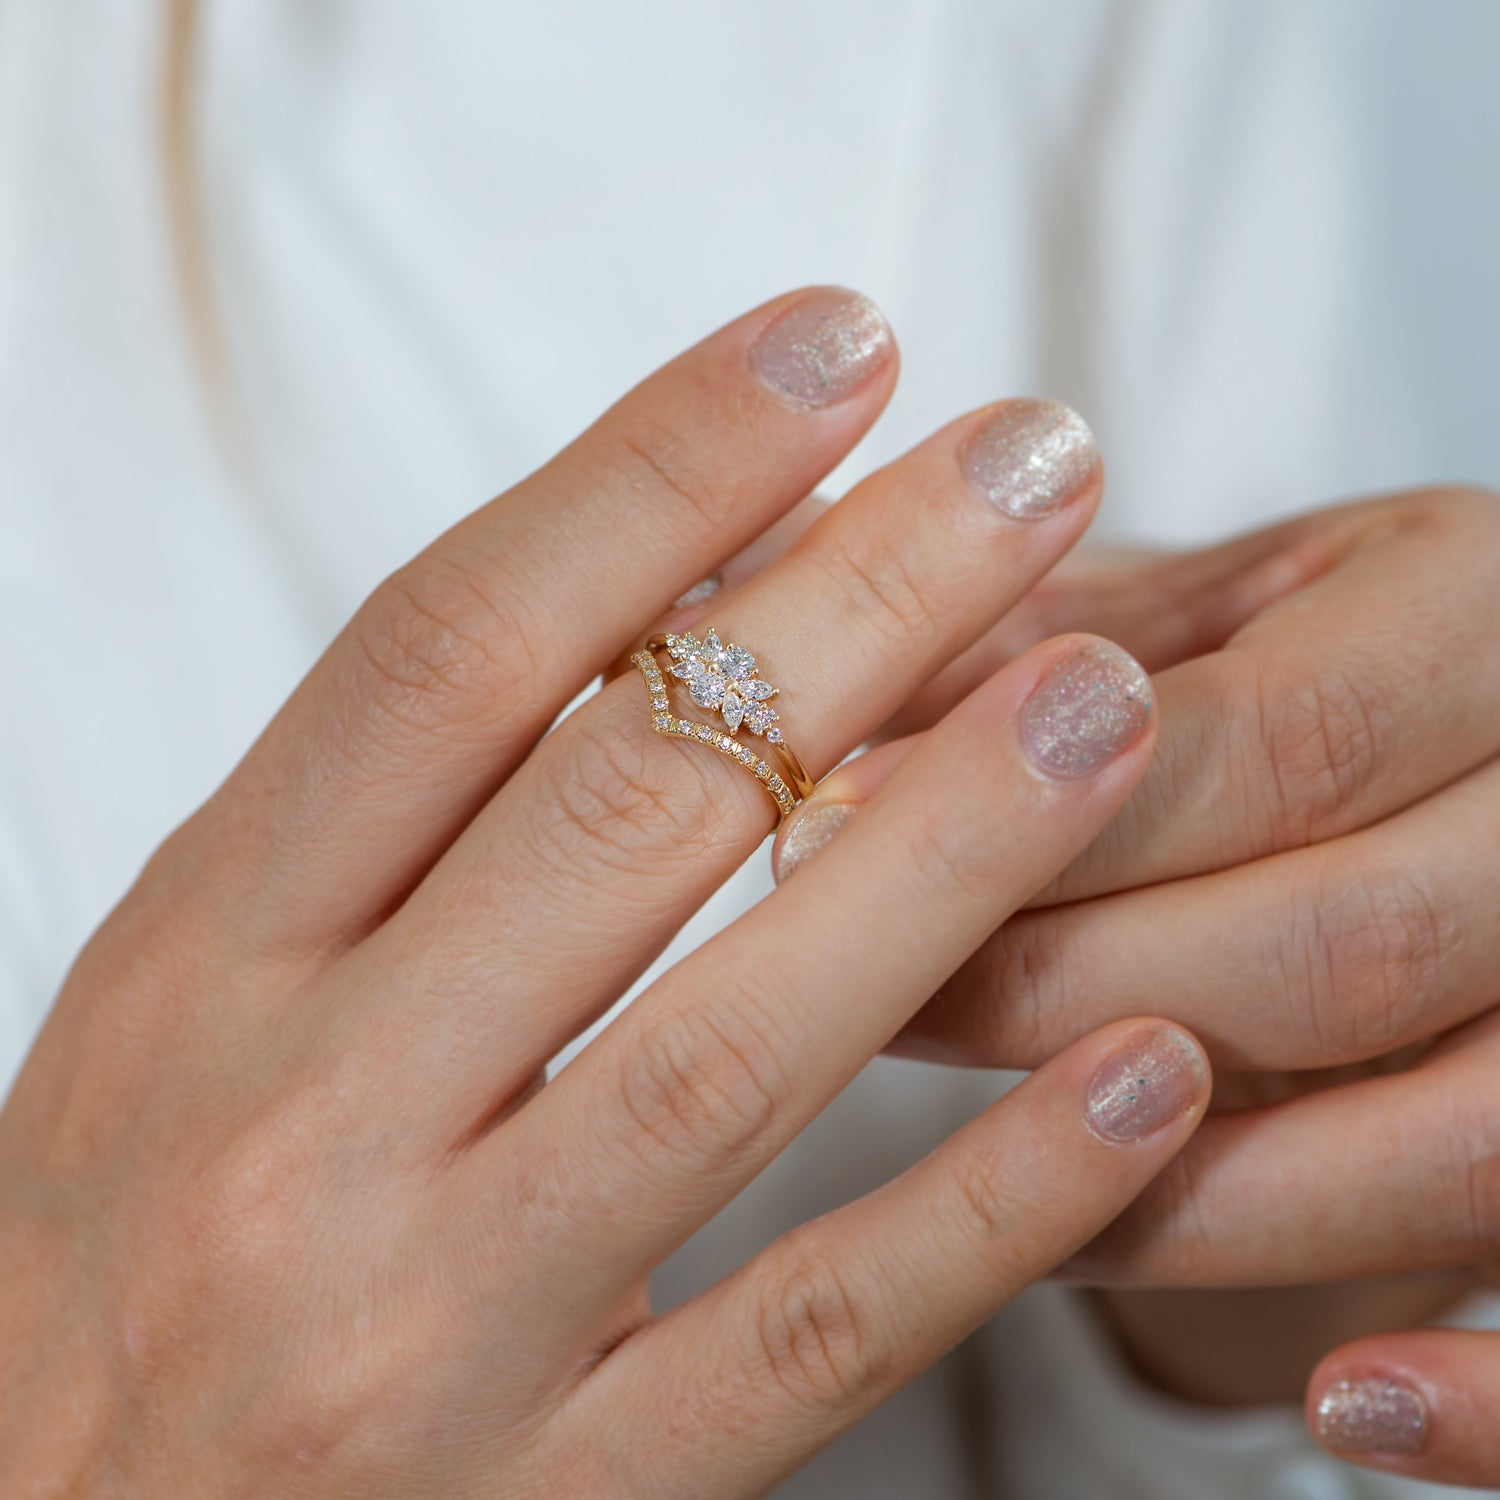 Engagement-Ring-with-a-Cluster-of-Diamonds-Small-Flora-Ring-momeny-in-set-side-shot